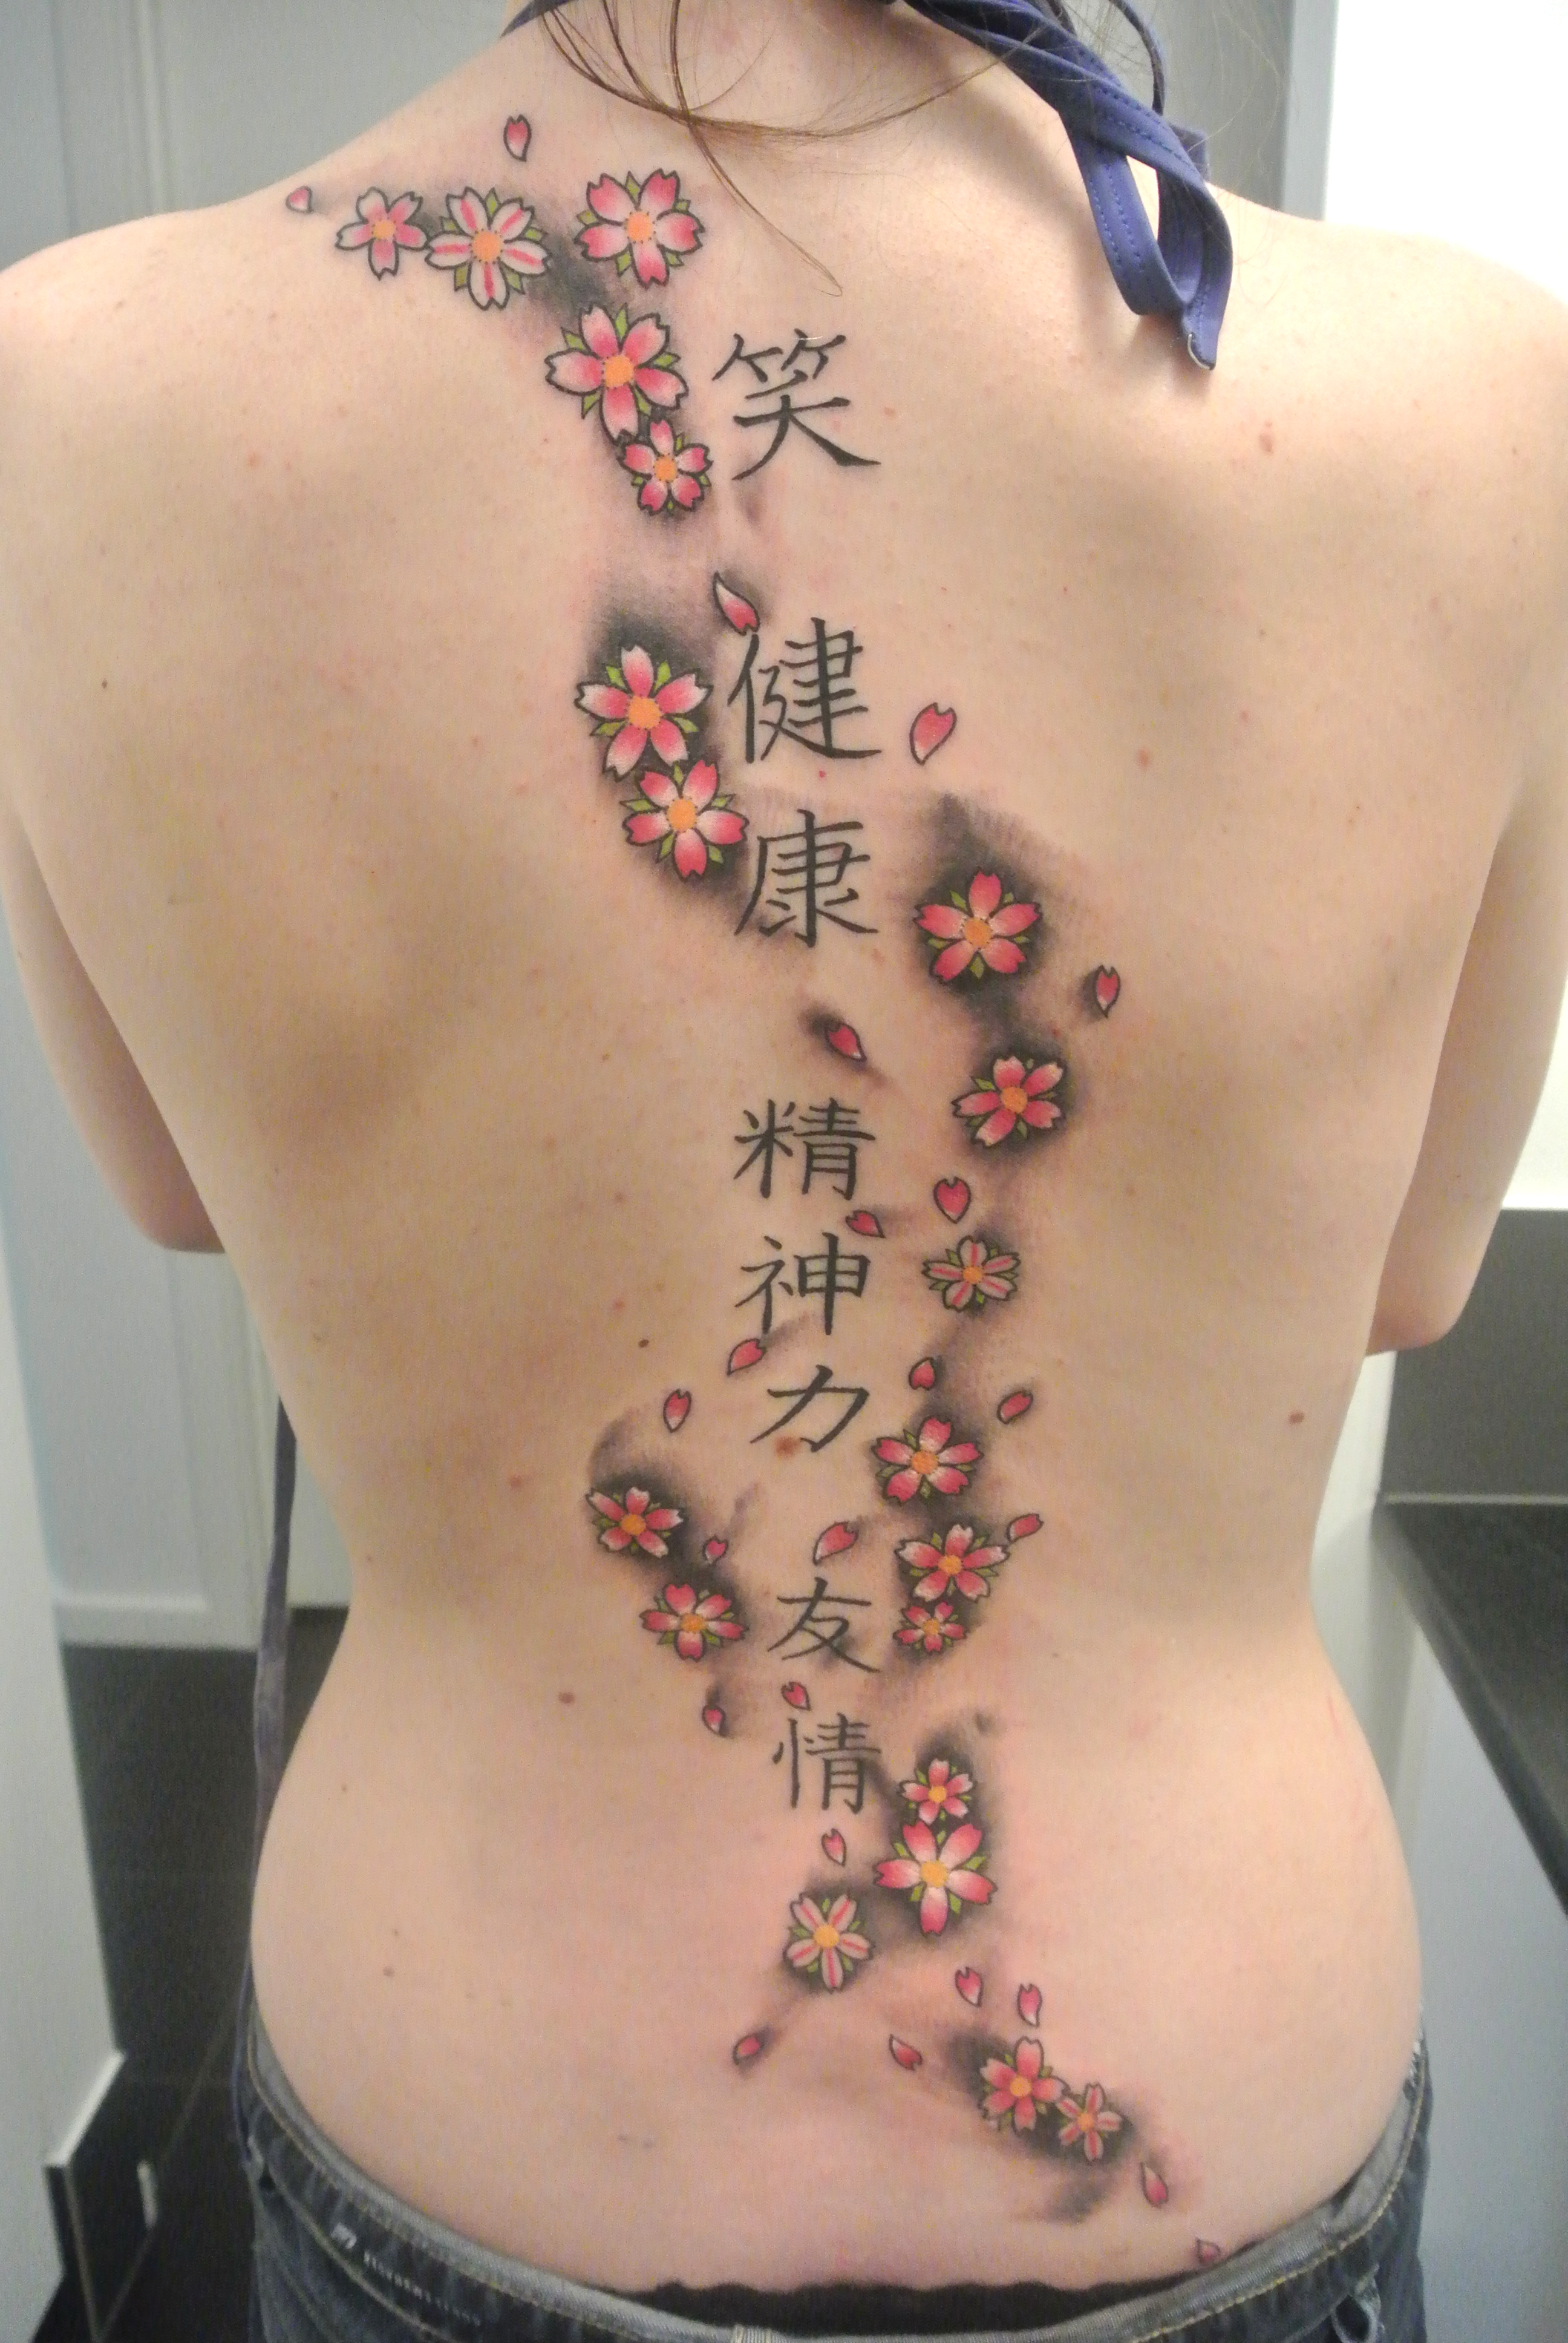 Lou shaw certified artist for Japanese cherry blossom tattoos